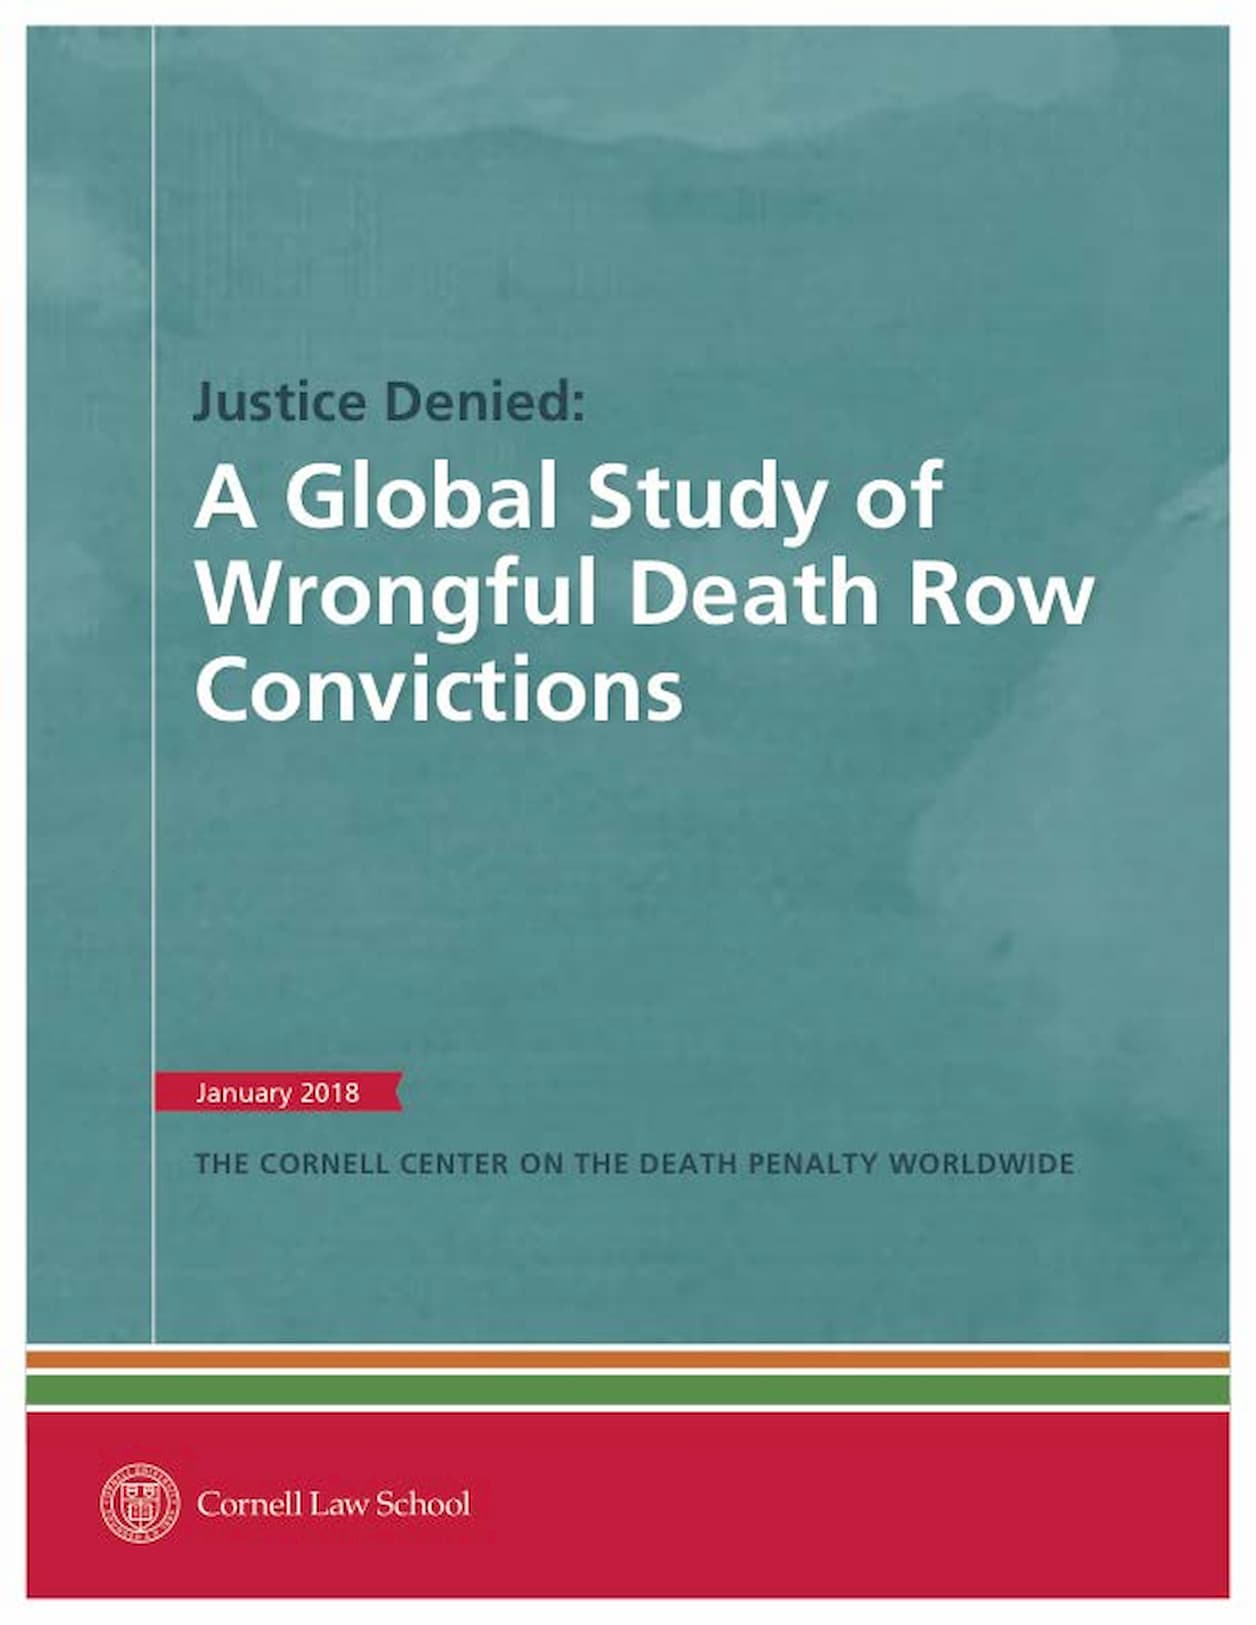 Justice Denied – A Global Study of Wrongful Death Row Convictions